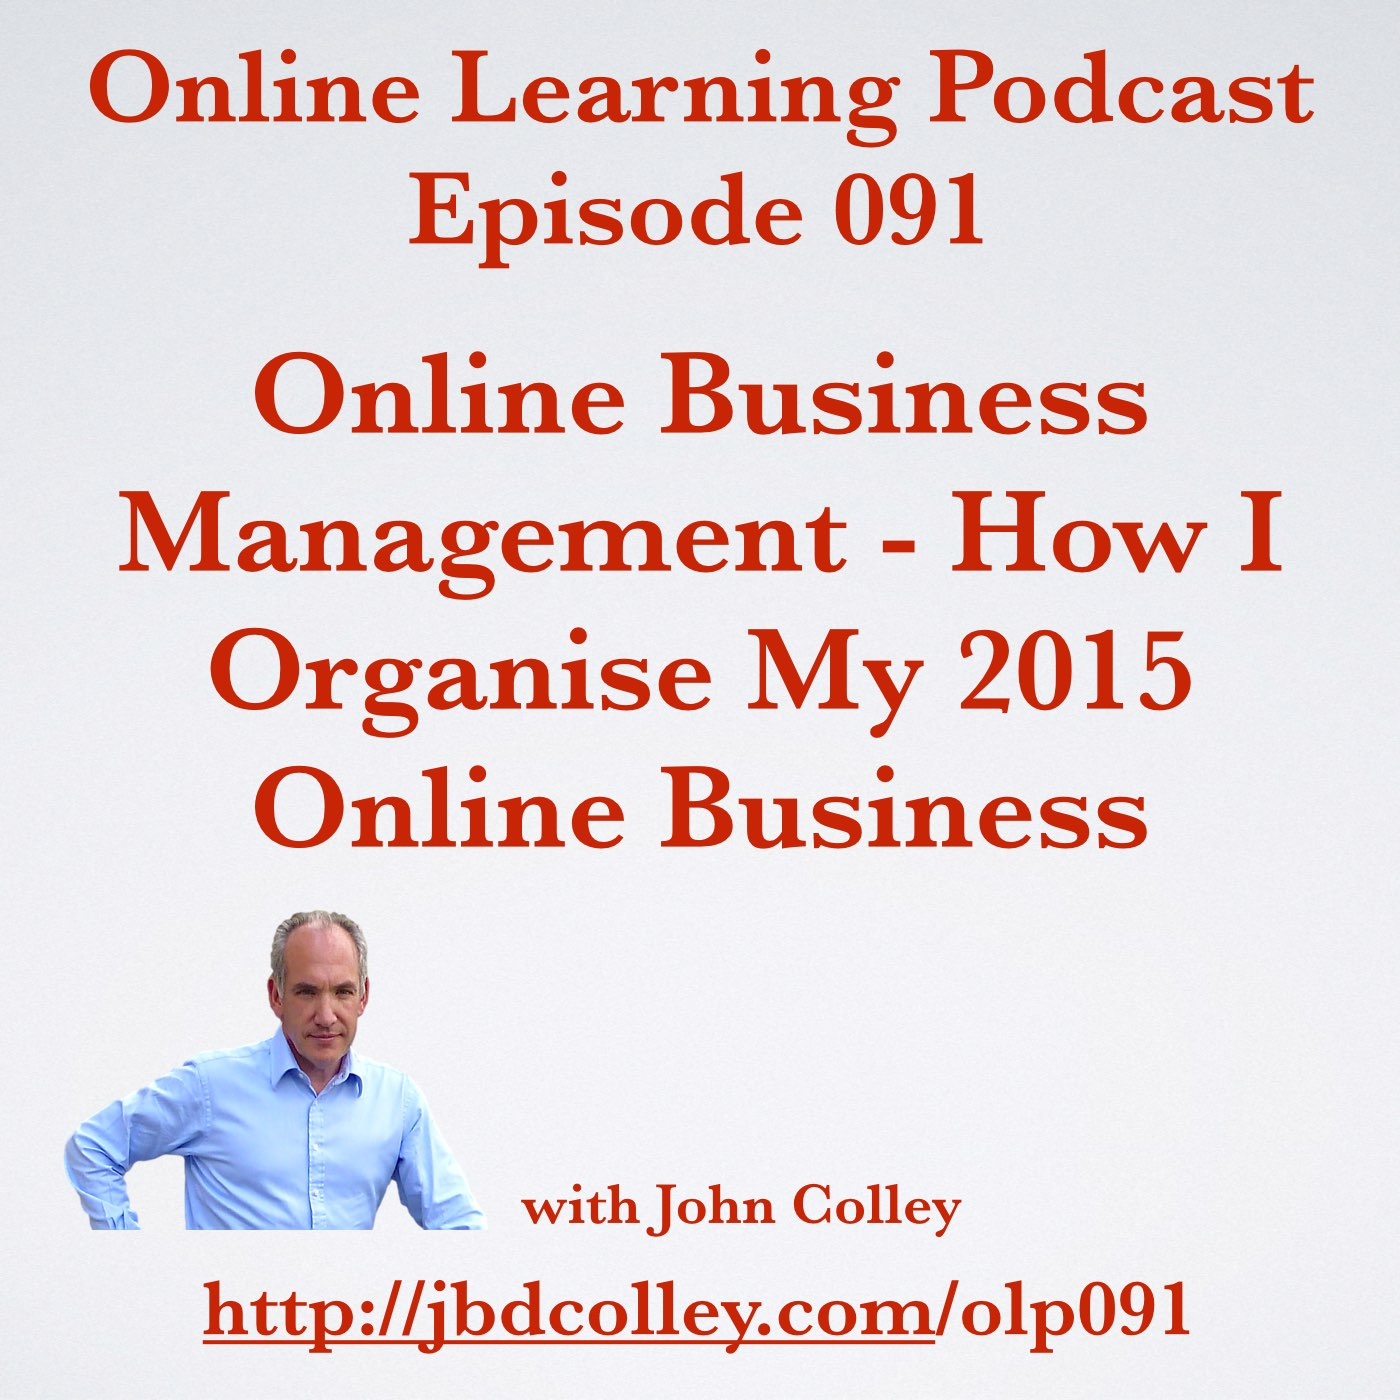 OLP091 Online Business Management - How I Organise My 2015 Online Business